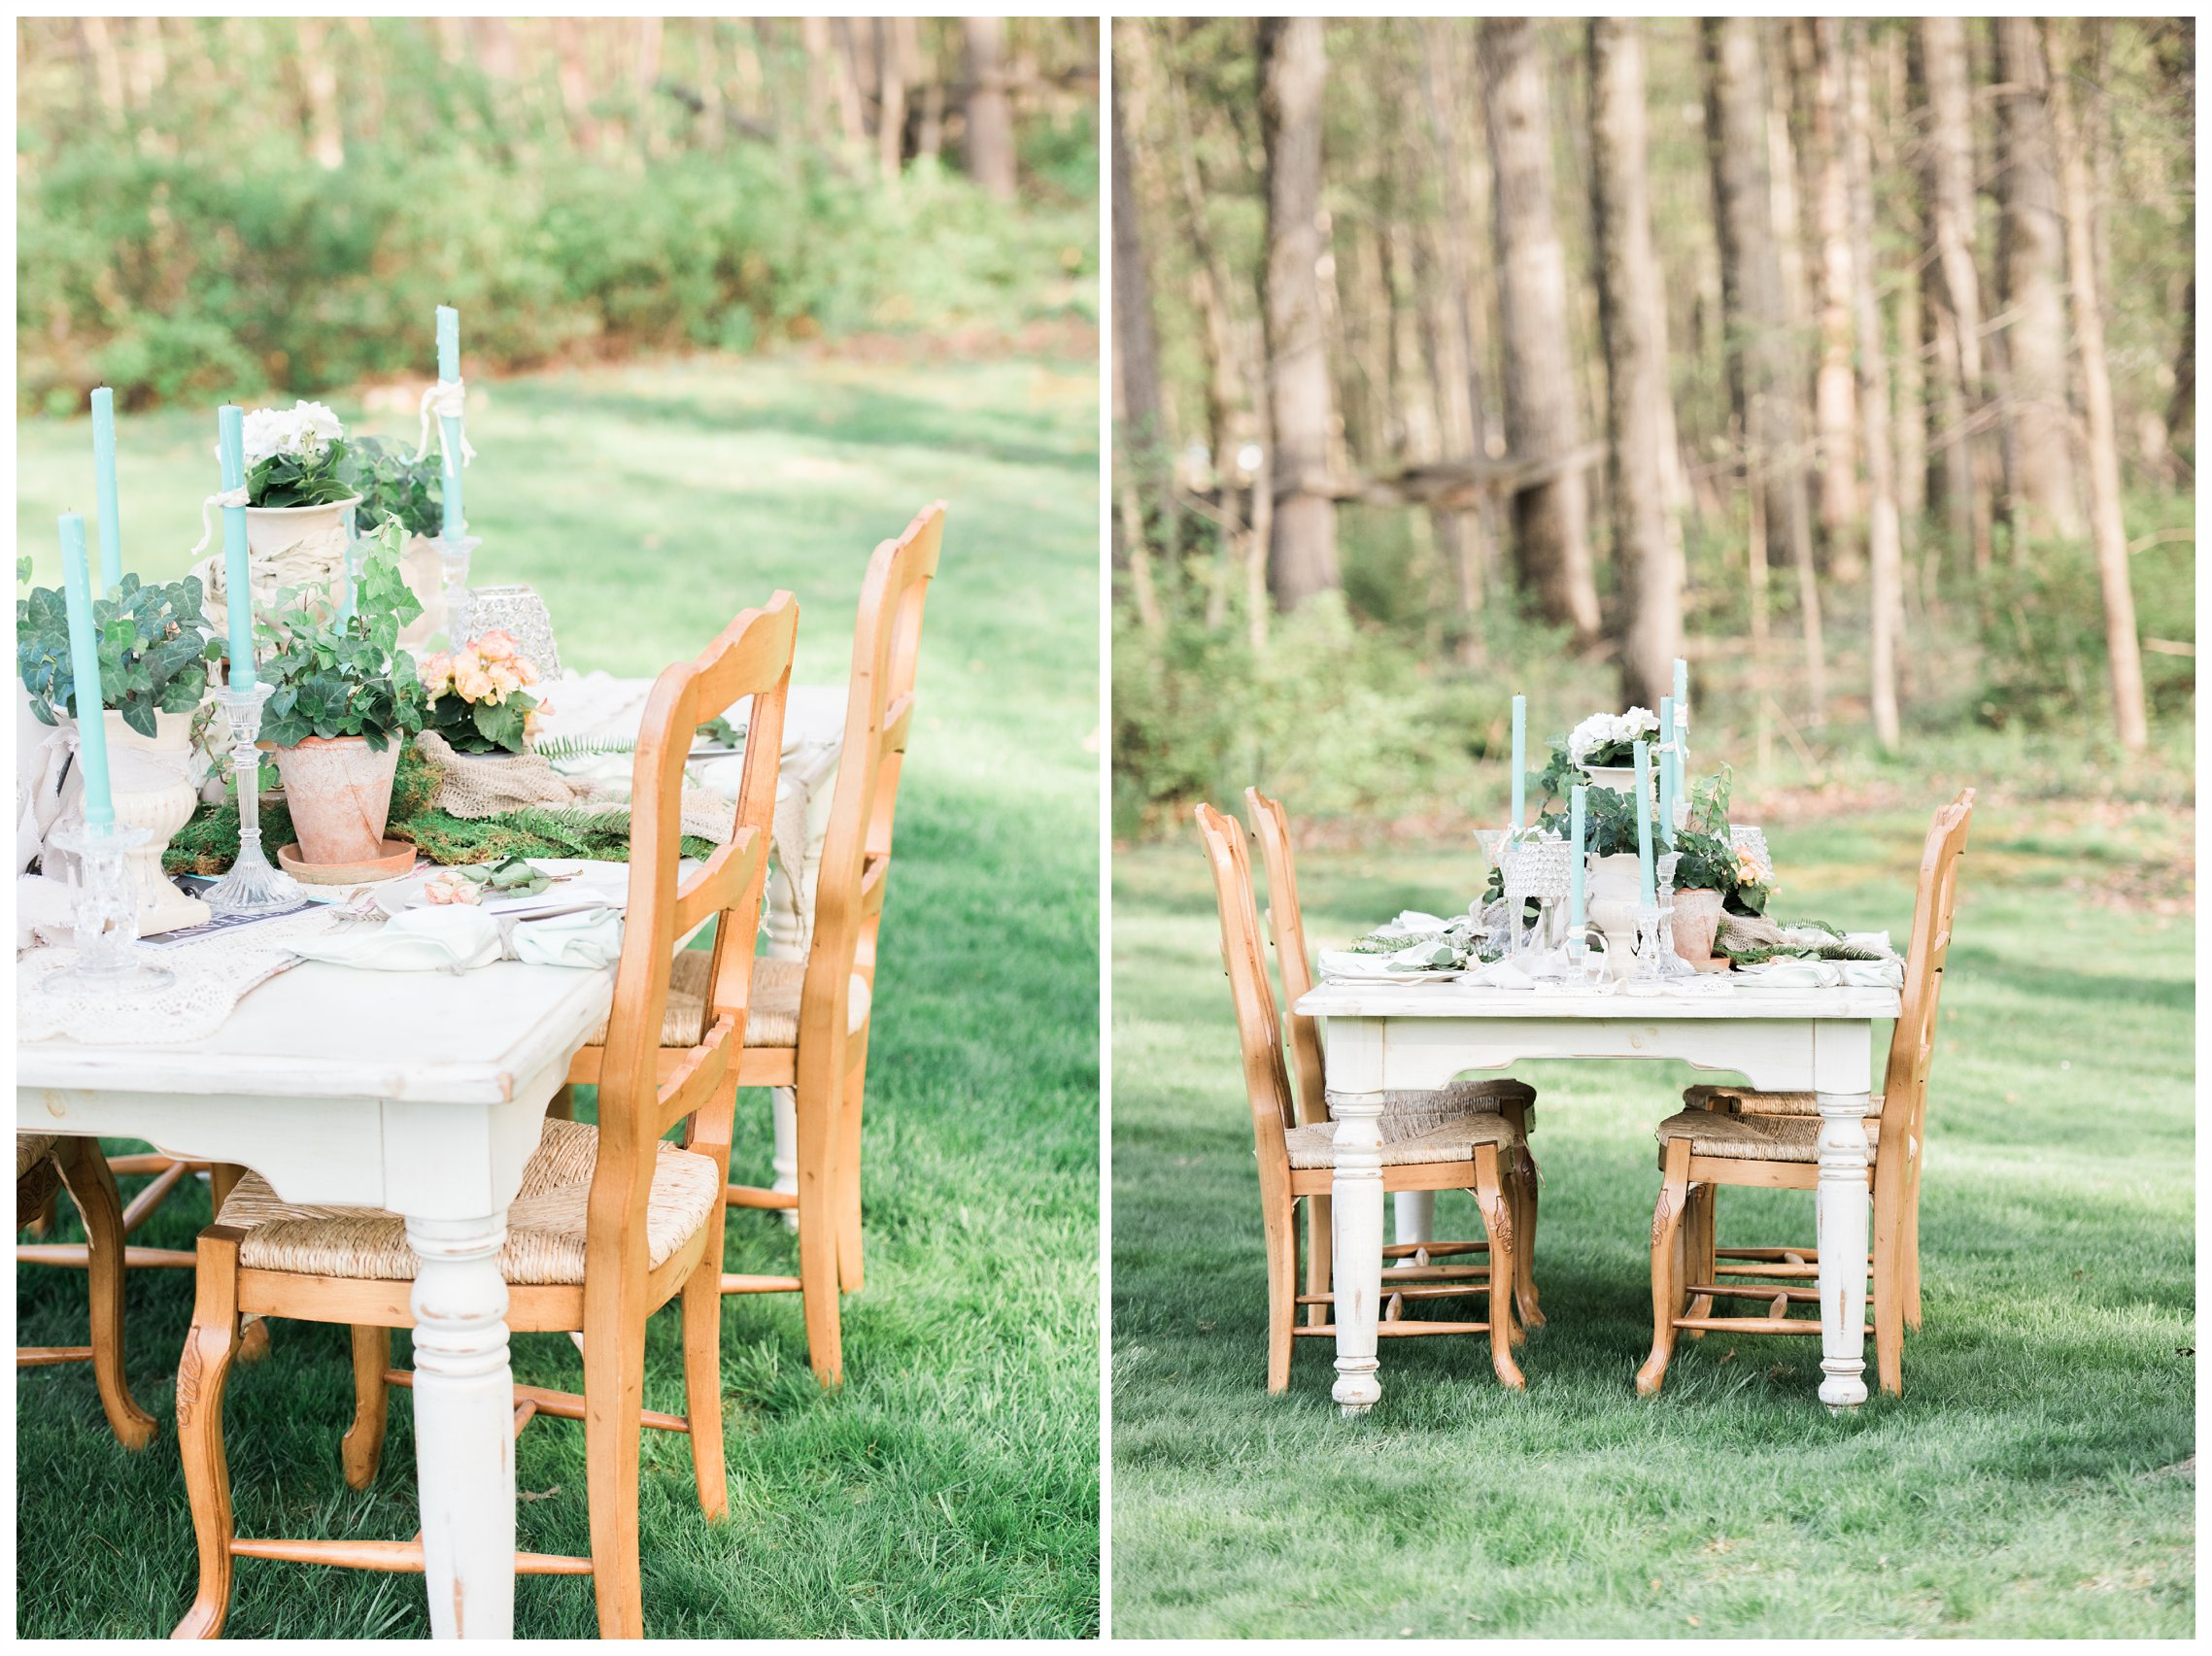 SterlingBrook Farm Styled Wedding